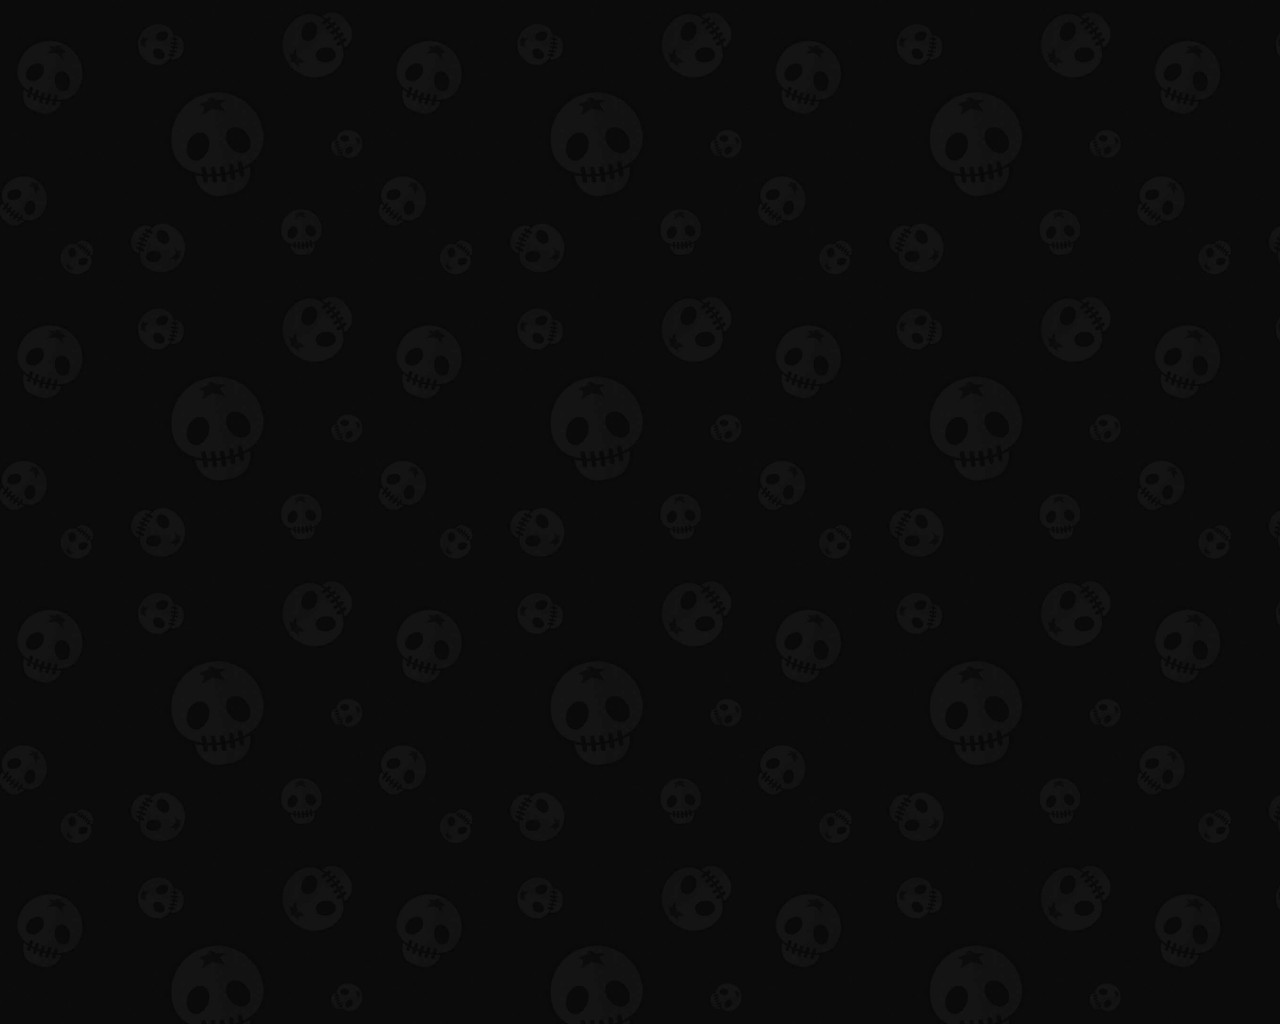 Star Skull Pattern Wallpaper for Desktop 1280x1024